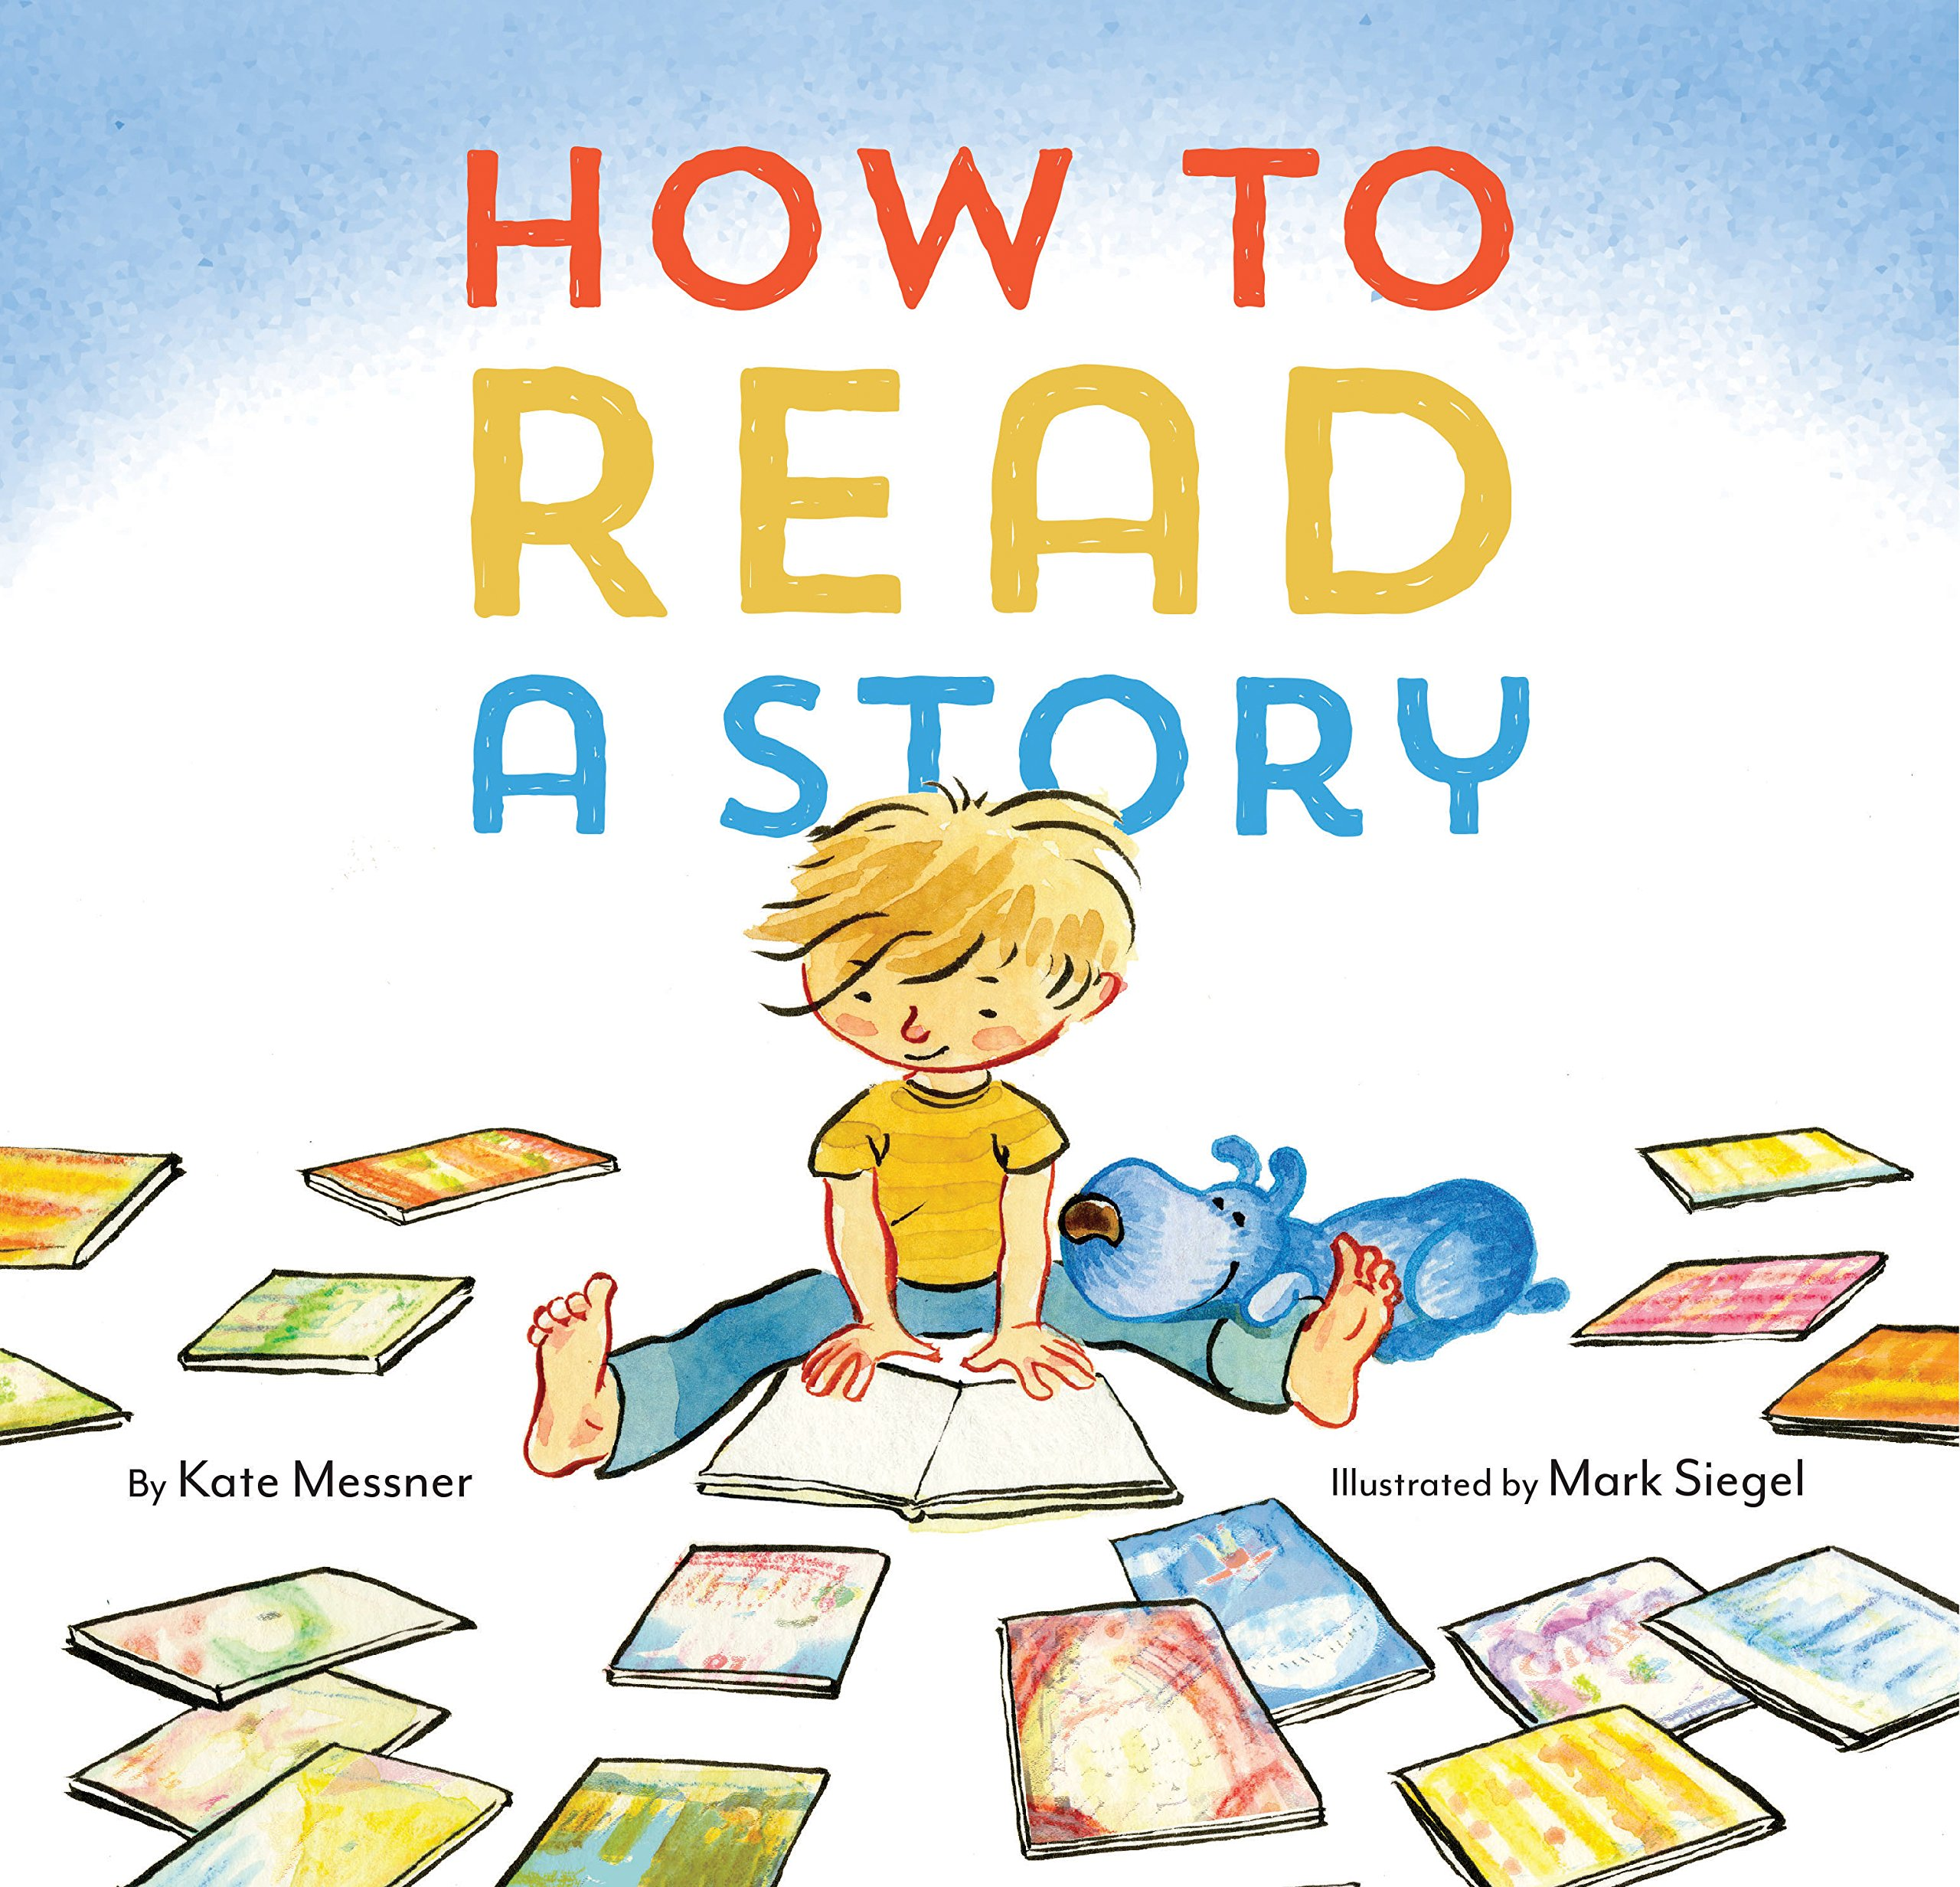 Amazon.com: How to Read a Story: (Illustrated Children's Book, Picture Book  for Kids, Read Aloud Kindergarten Books) (9781452112336): Messner, Kate,  Siegel, Mark: Books